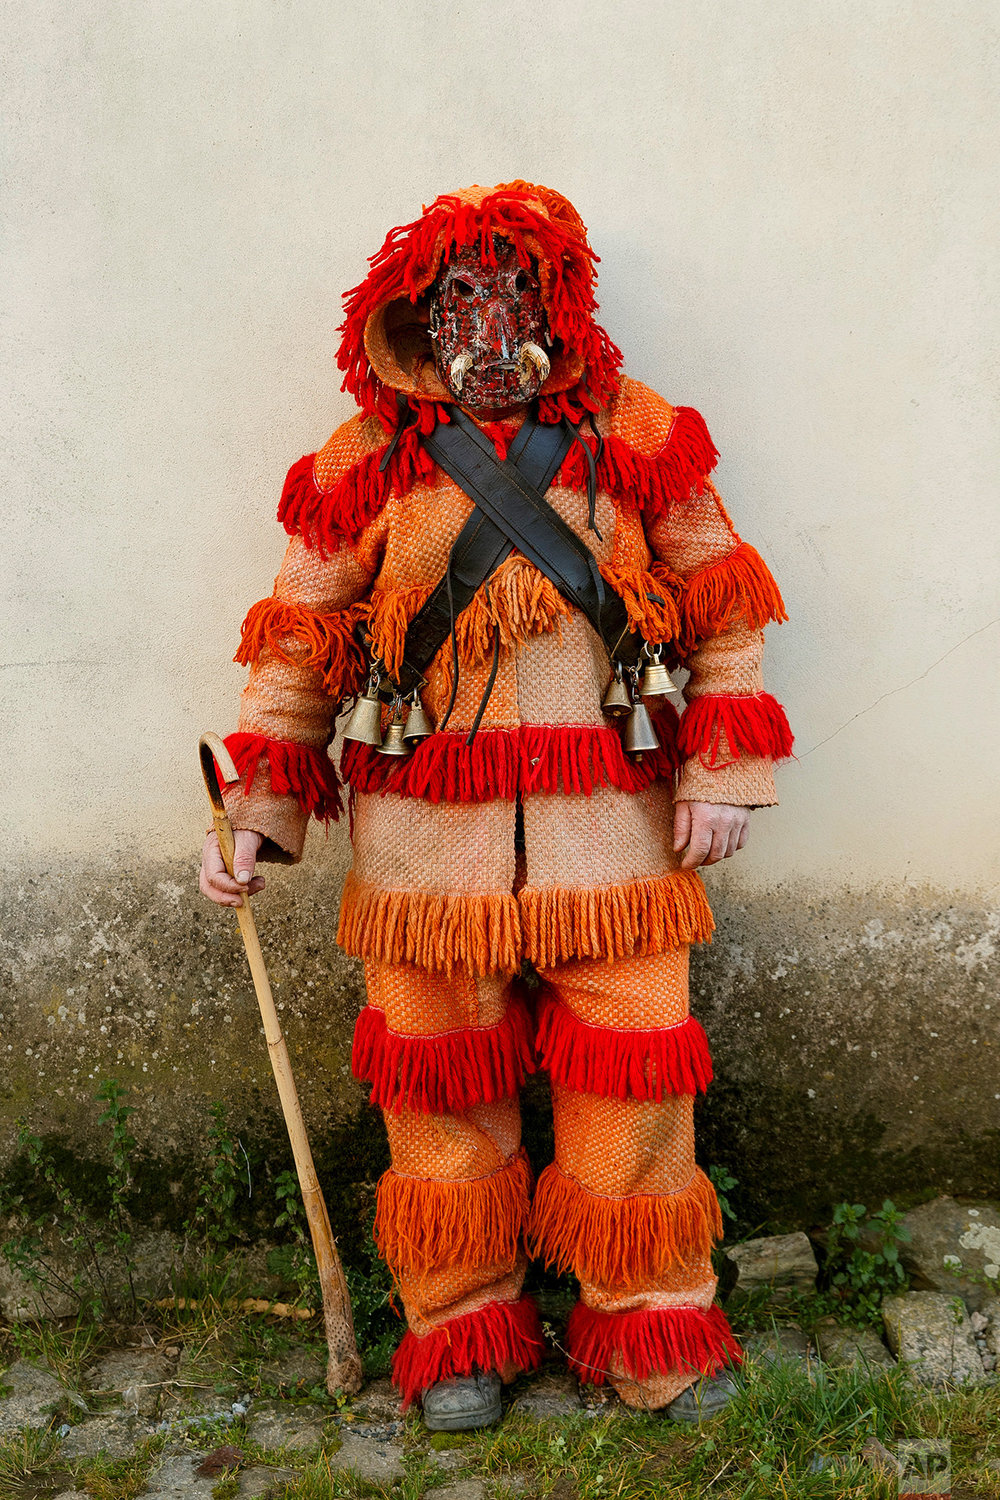 In this photo taken on Saturday, Jan. 7, 2017, a person dressed as a character from the 'Careto de Salsas' masquerade, wearing an ancient mask poses for a photo, during a winter masquerade gathering in Salsas, Portugal. (AP Photo/Daniel Ochoa de Olza)